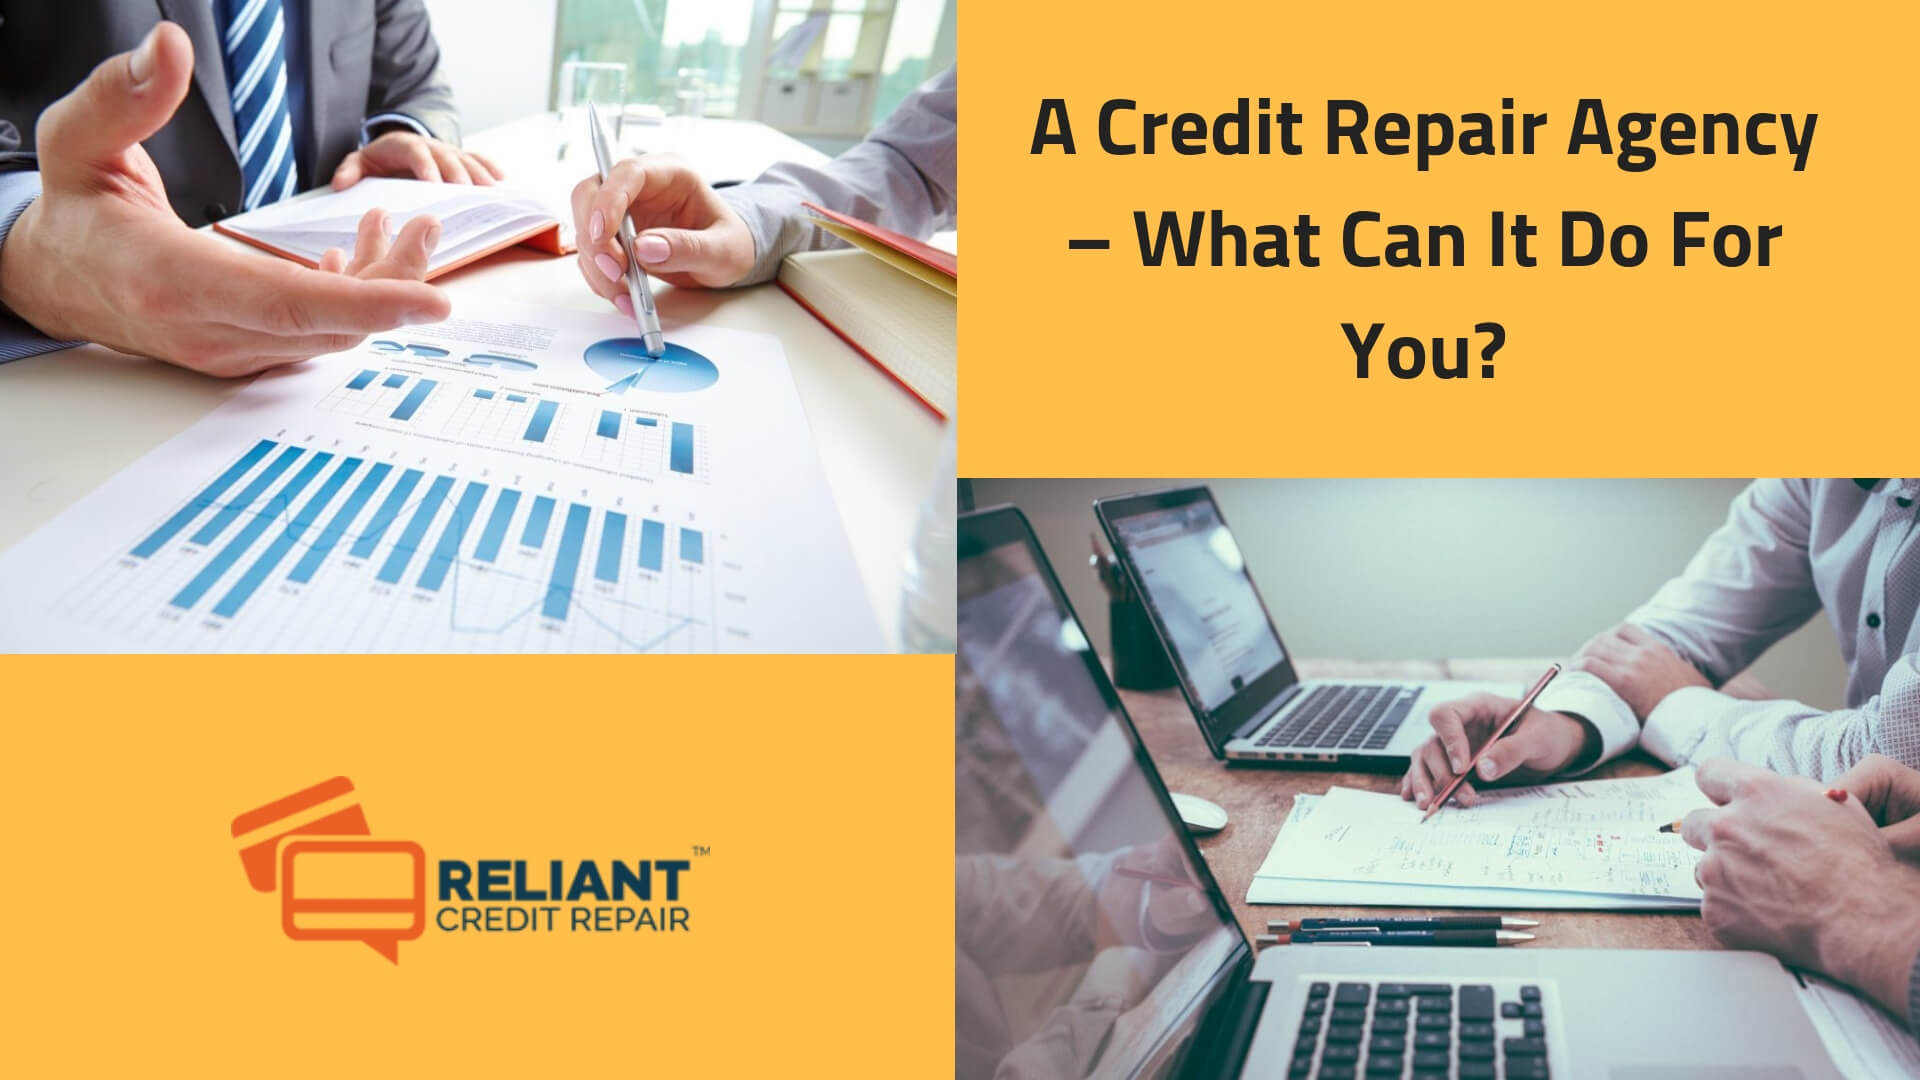 A Credit Repair Agency – What Can It Do For You